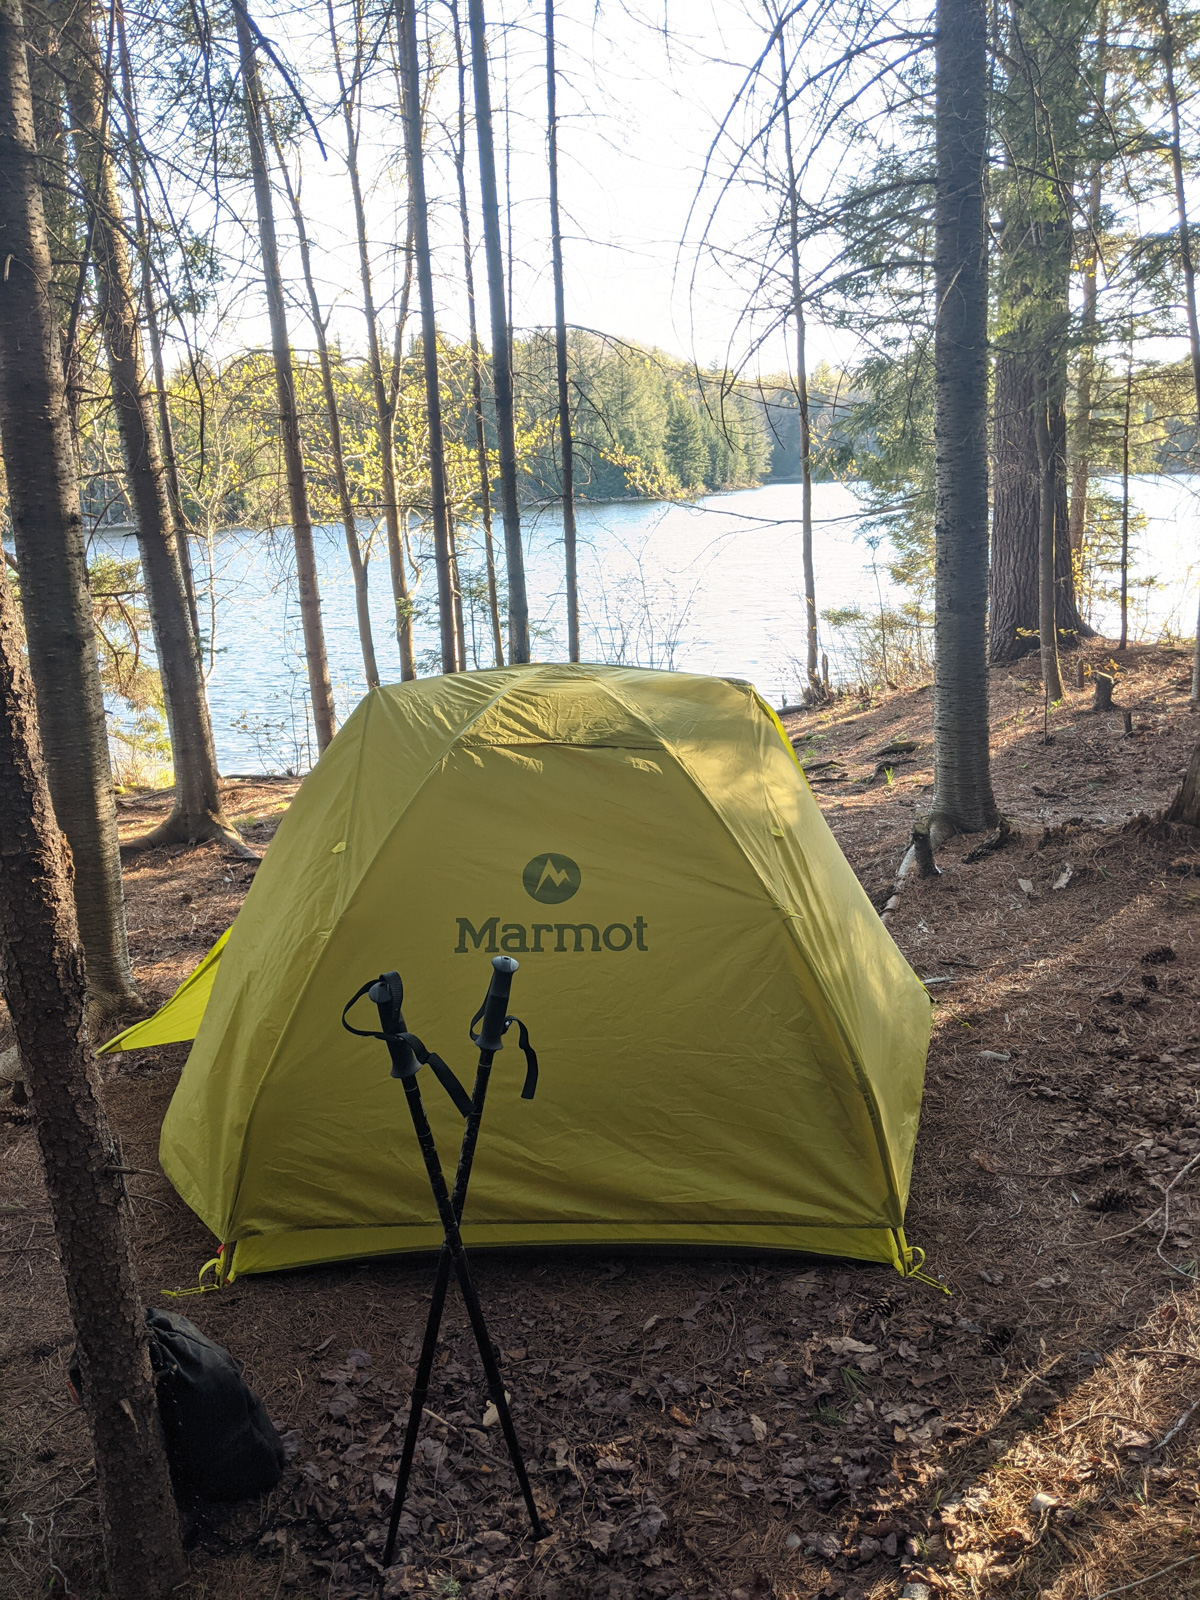 Cowhorn Pond Campsite on the CL50